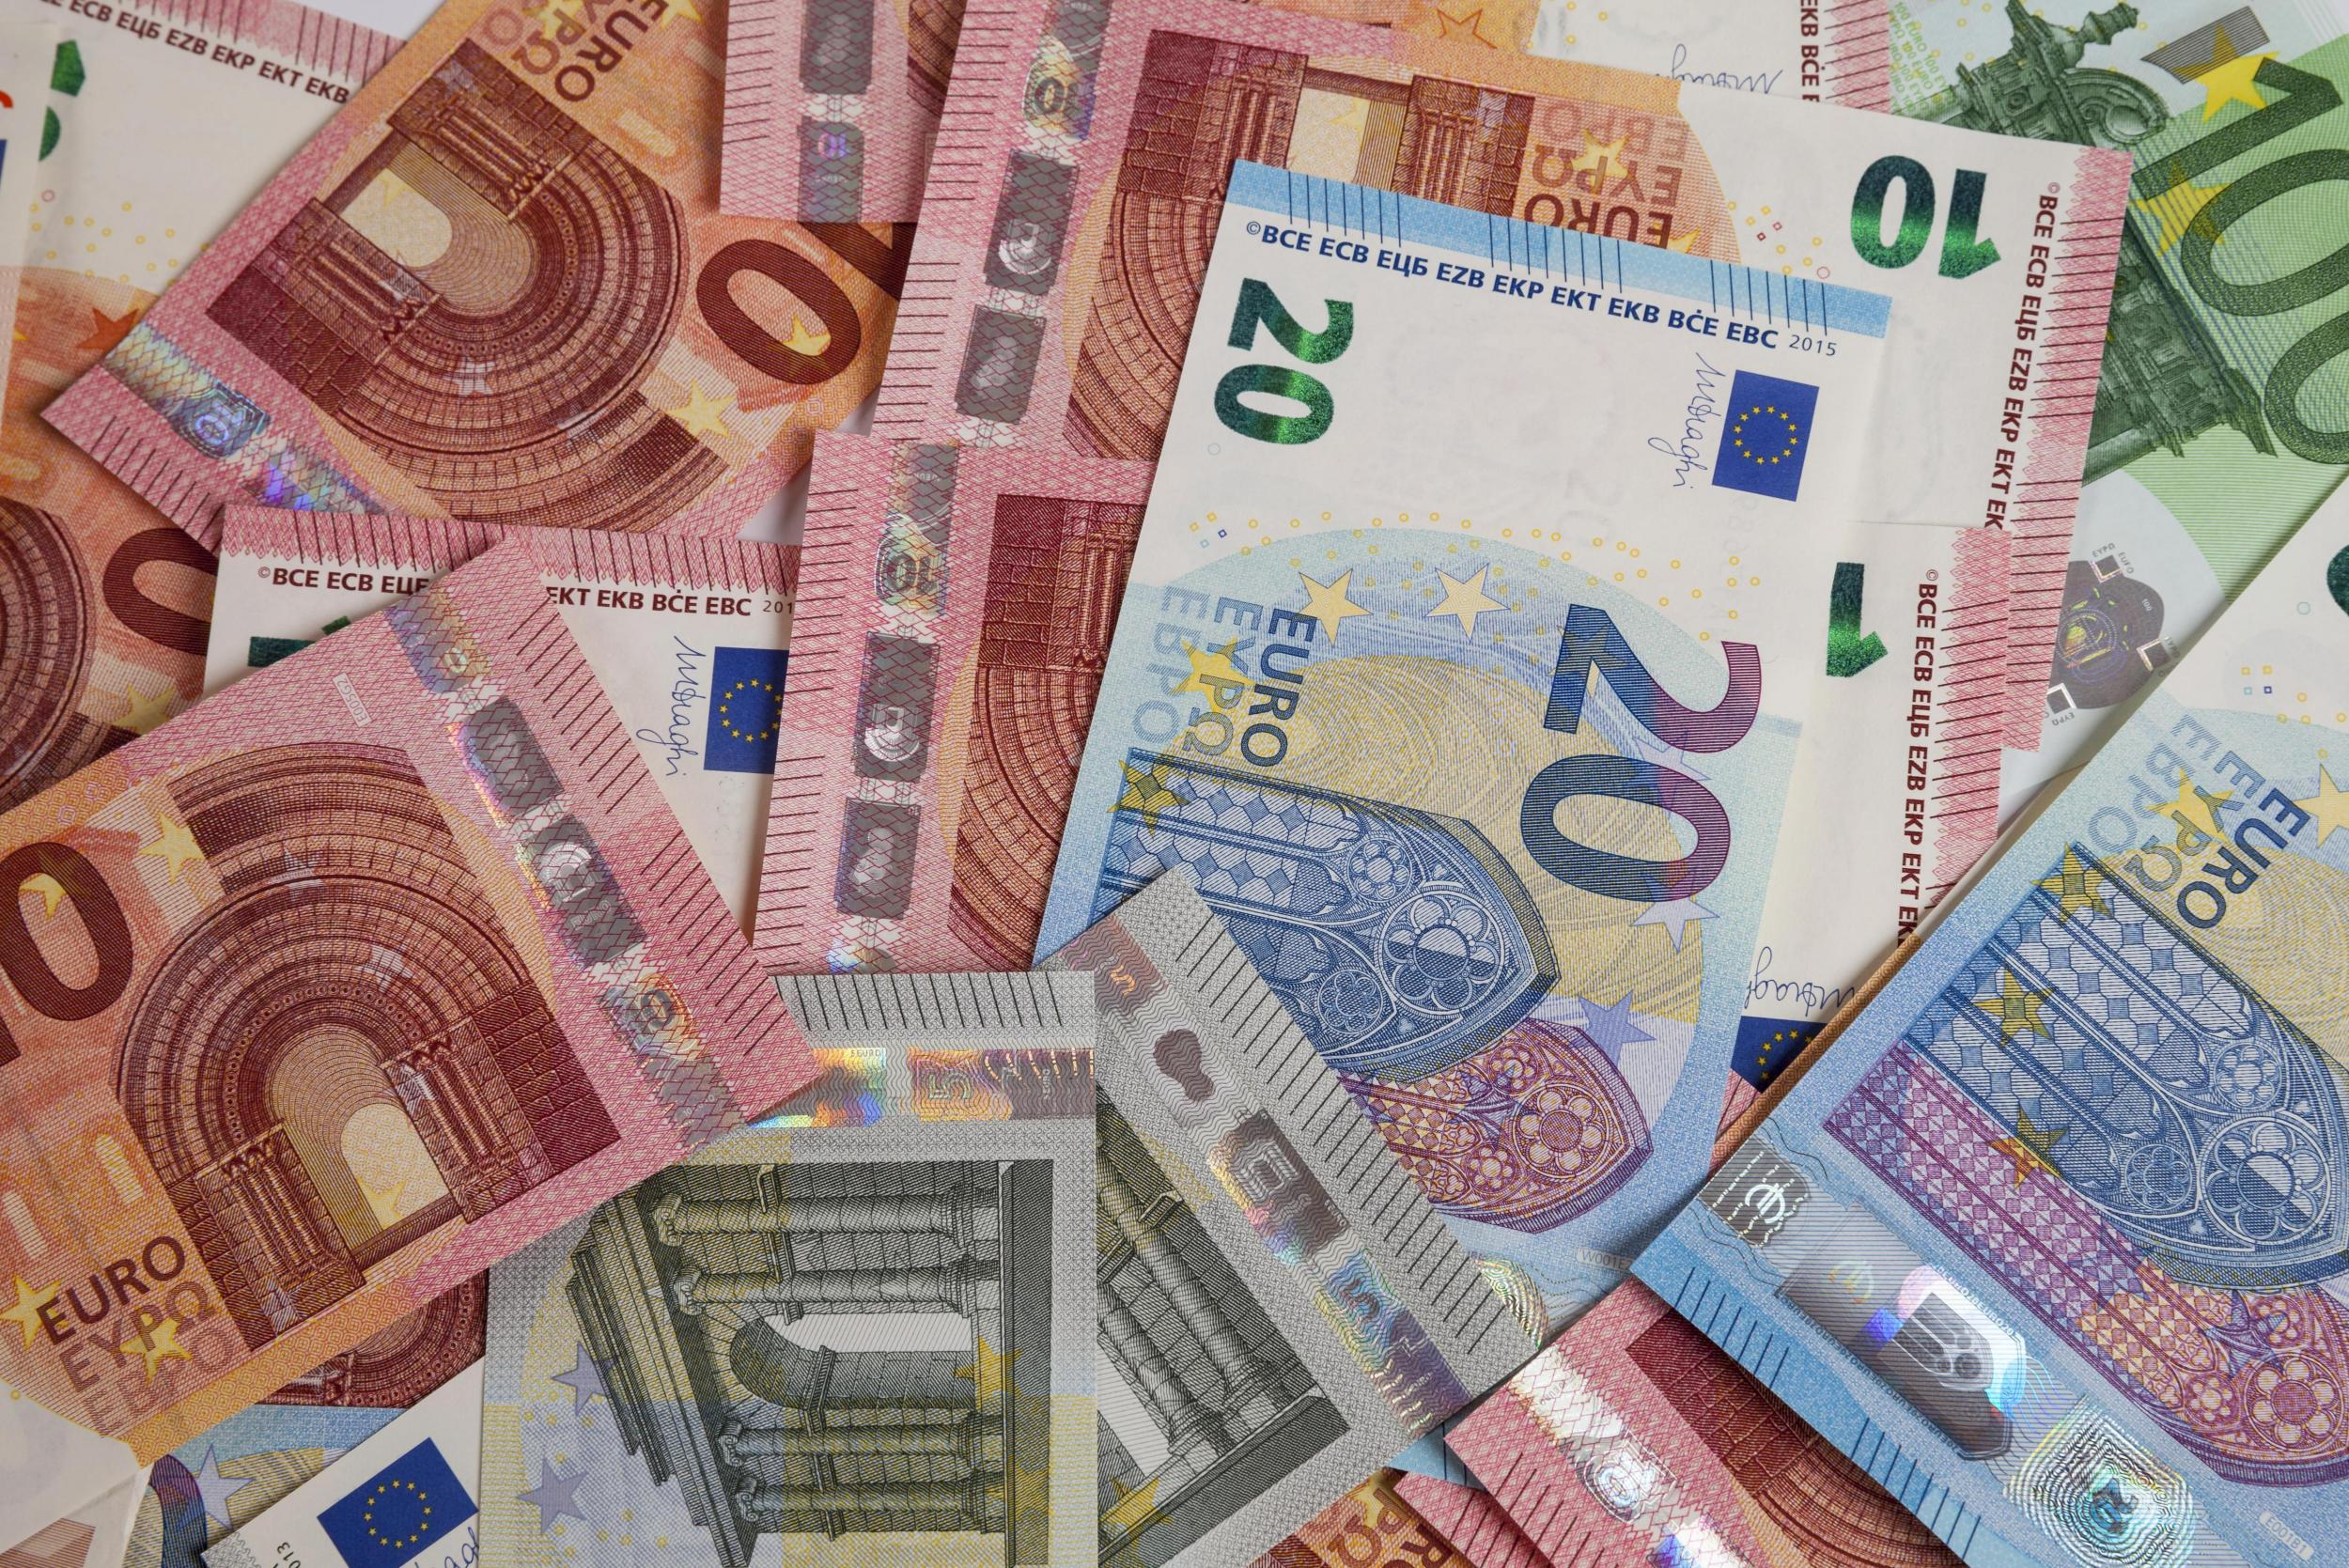 uk holidaymakers face worst euro exchange rate ever seen for summer getaways